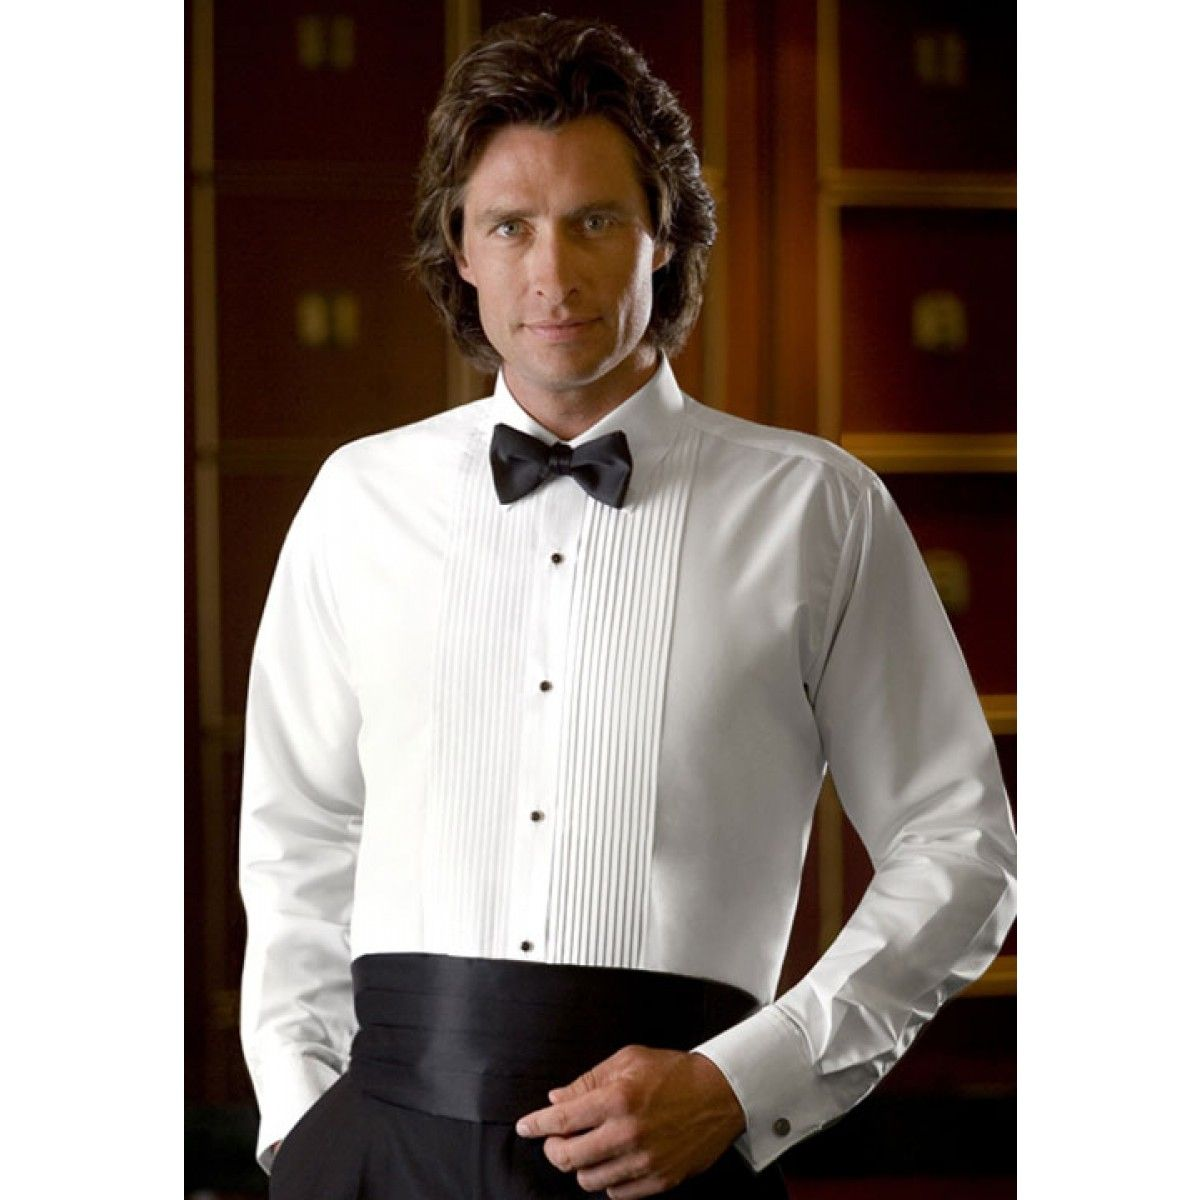 White Laydown Collar Tuxedo Shirt Chesti De Purtat